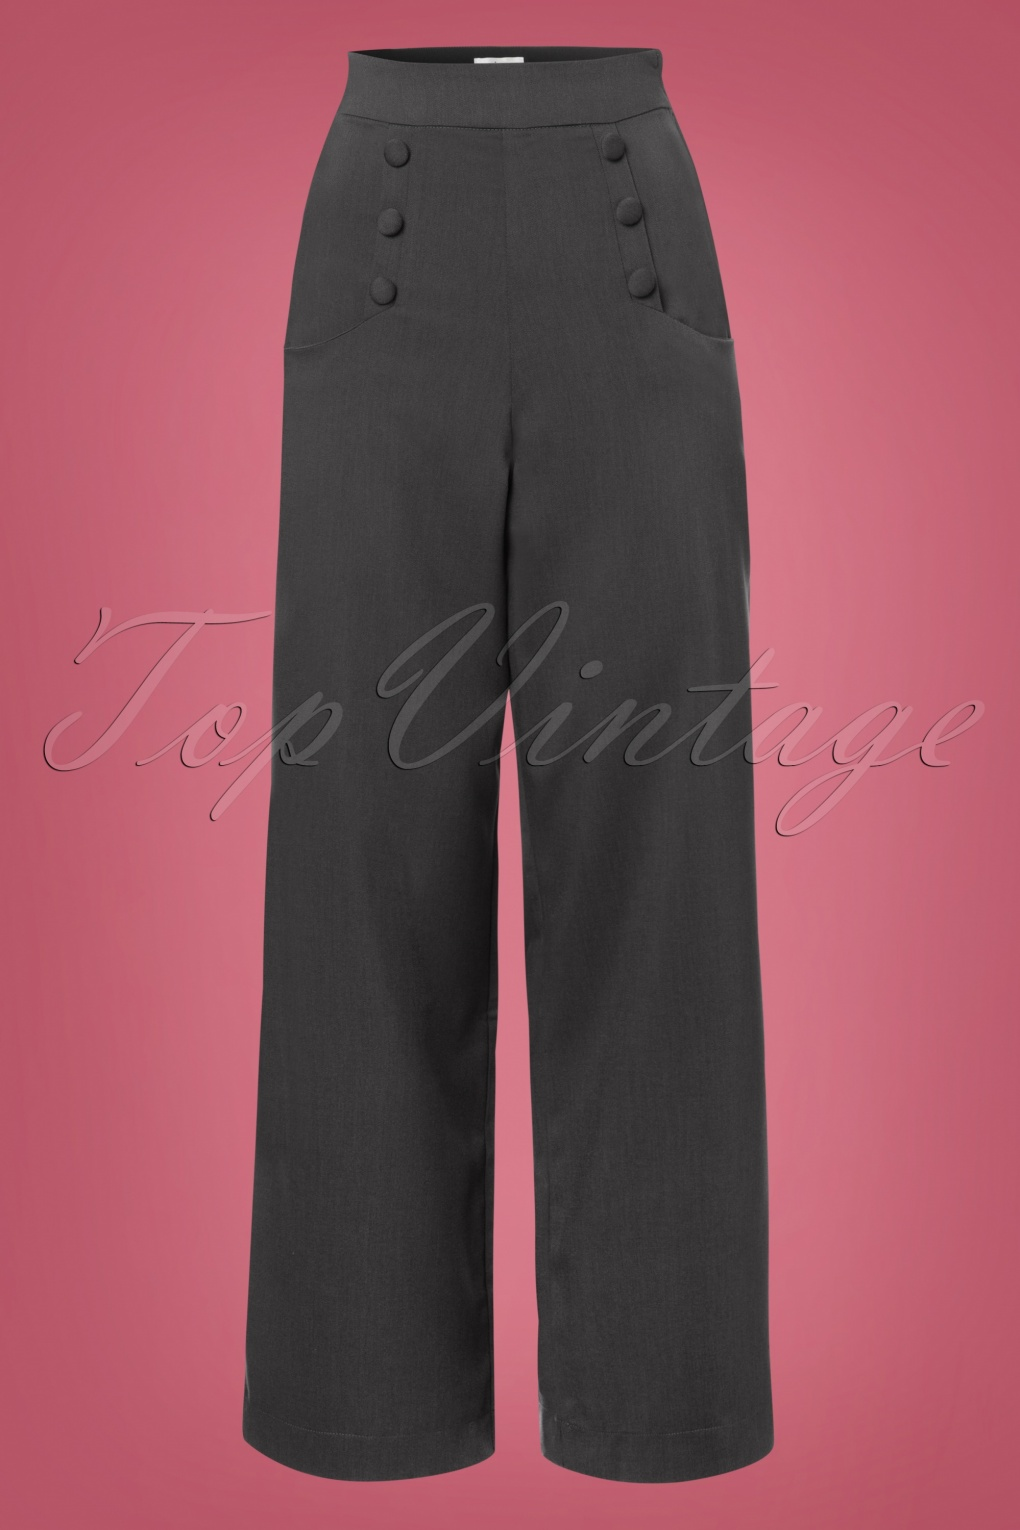 Vintage Wide Leg Pants 1920s to 1950s History 40s Ginger Trousers in Charcoal Grey £79.67 AT vintagedancer.com